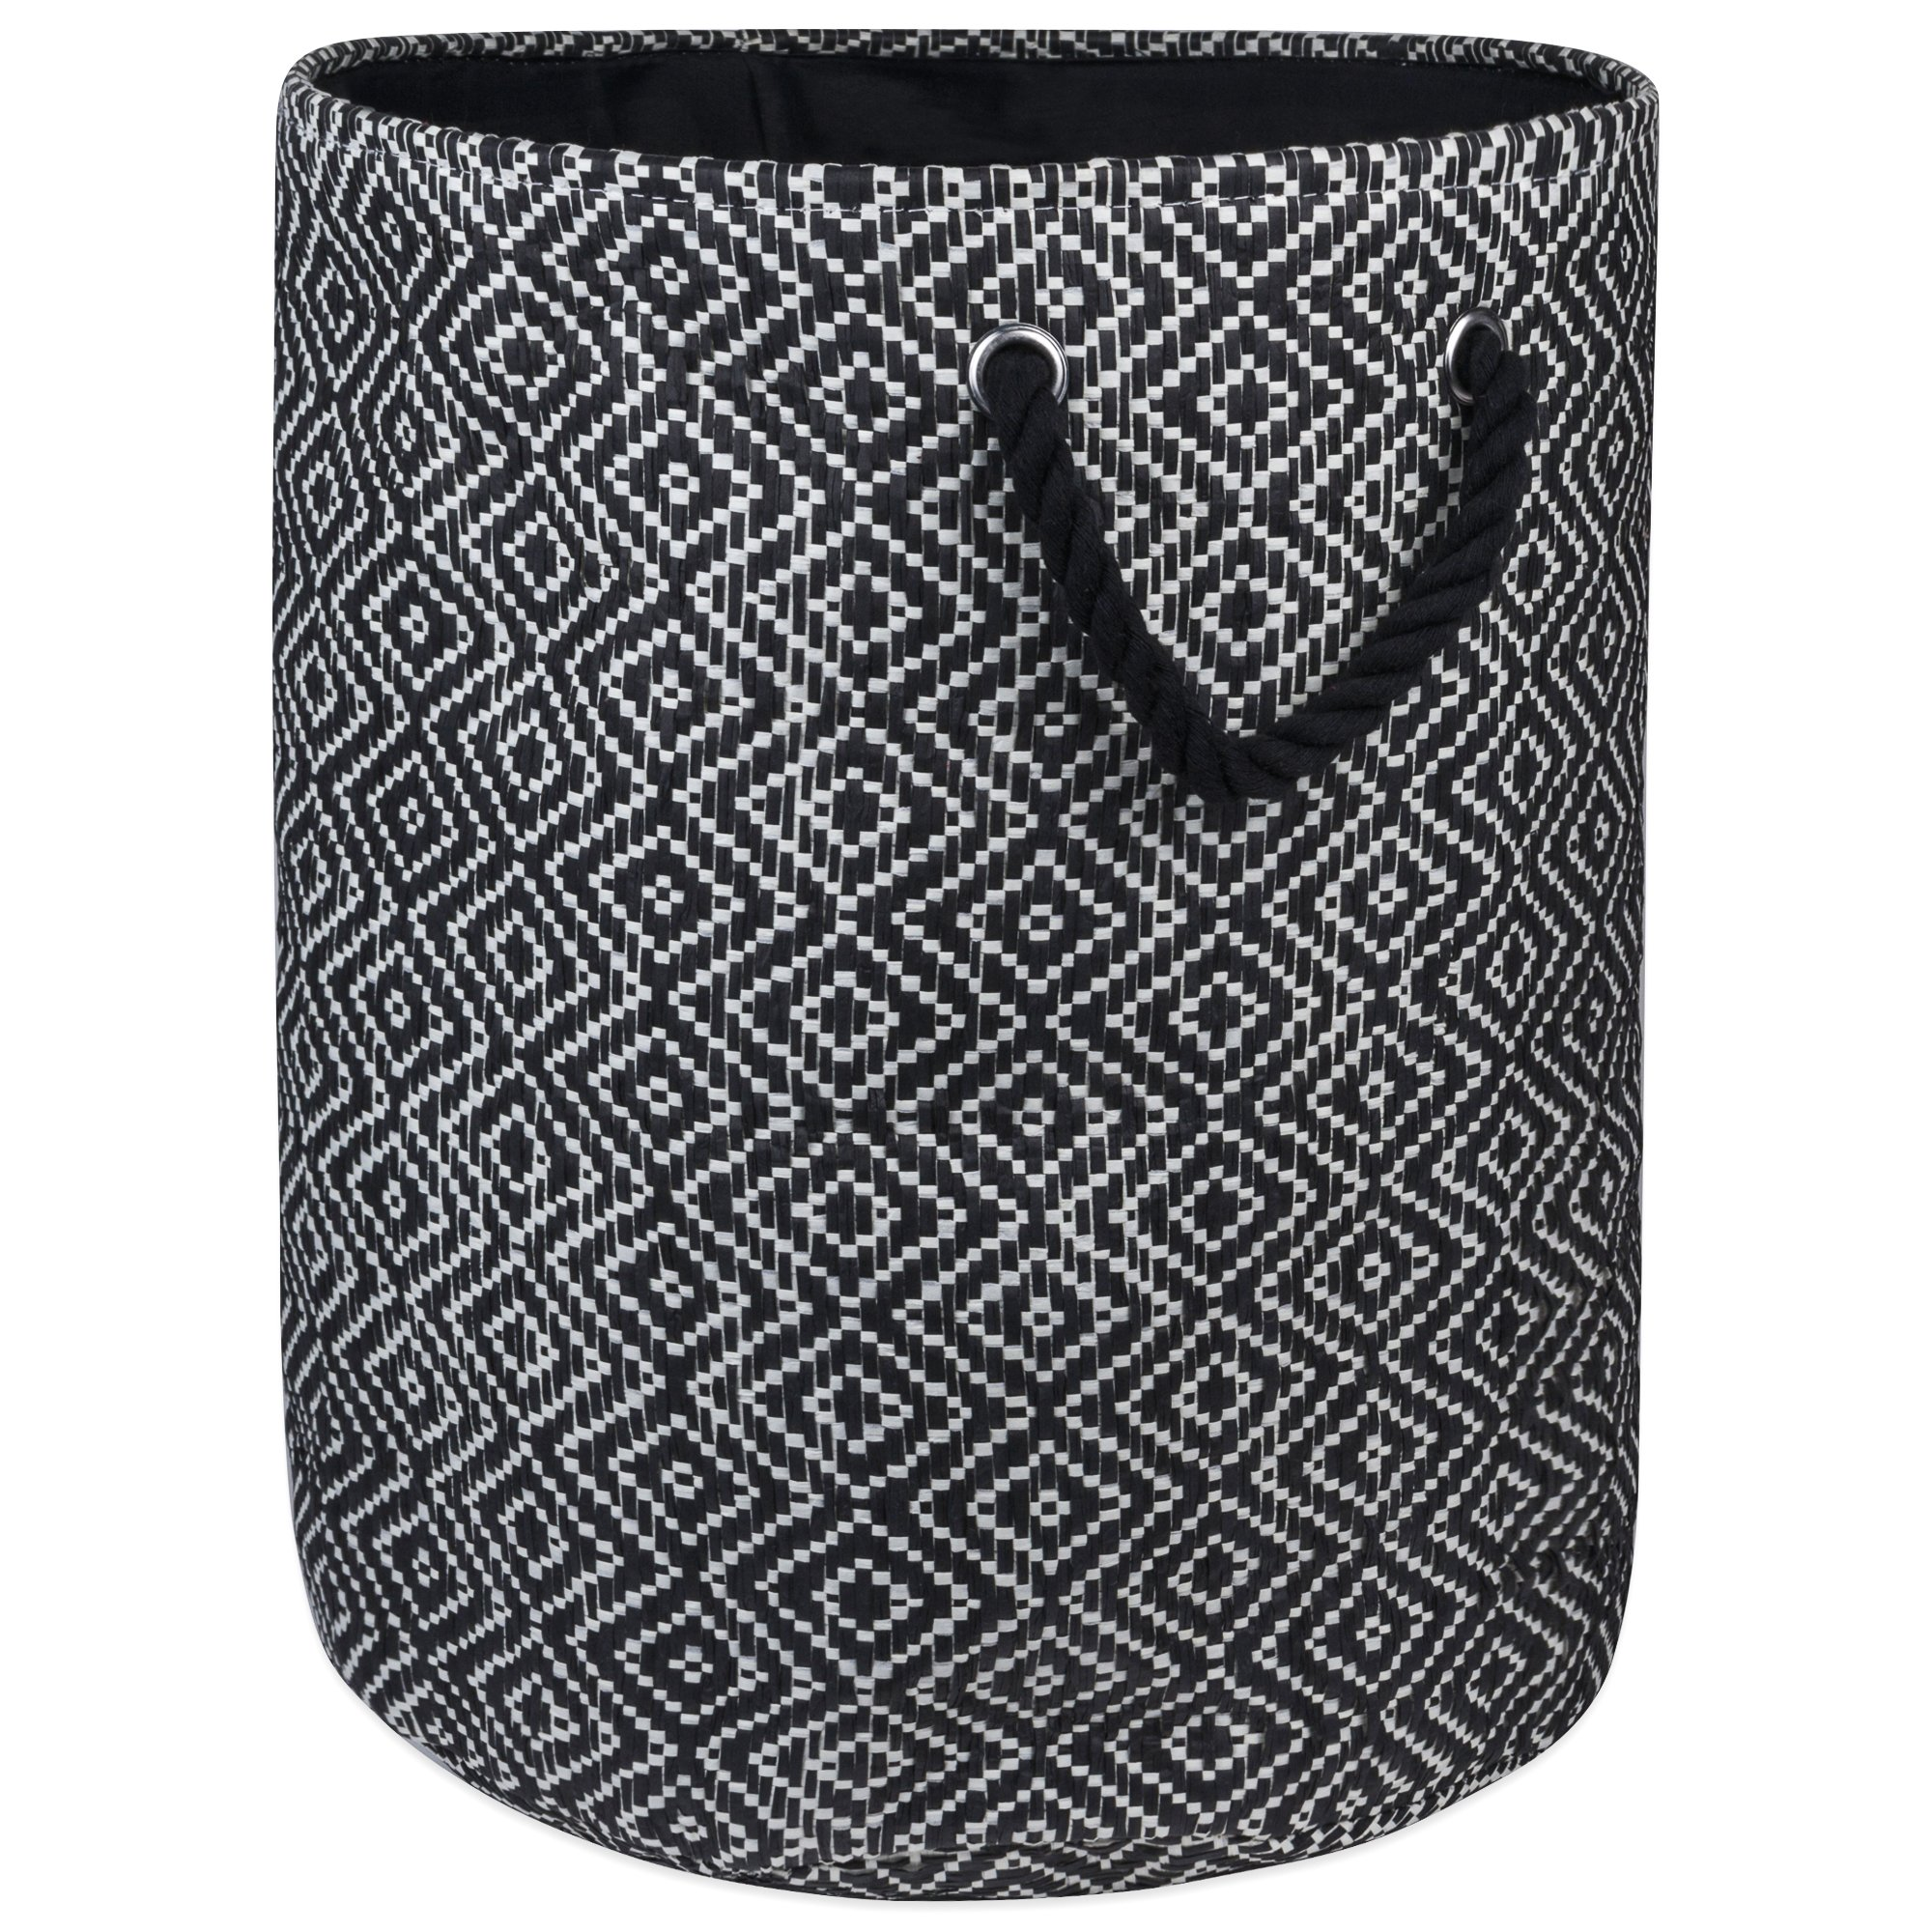 """DII Woven Paper Basket or Bin, Collapsible & Convenient Home Organization Solution for Bedroom, Bathroom, Dorm or Laundry(Medium Round - 14x17""""), Black & White Diamond Basketweave by DII (Image #1)"""